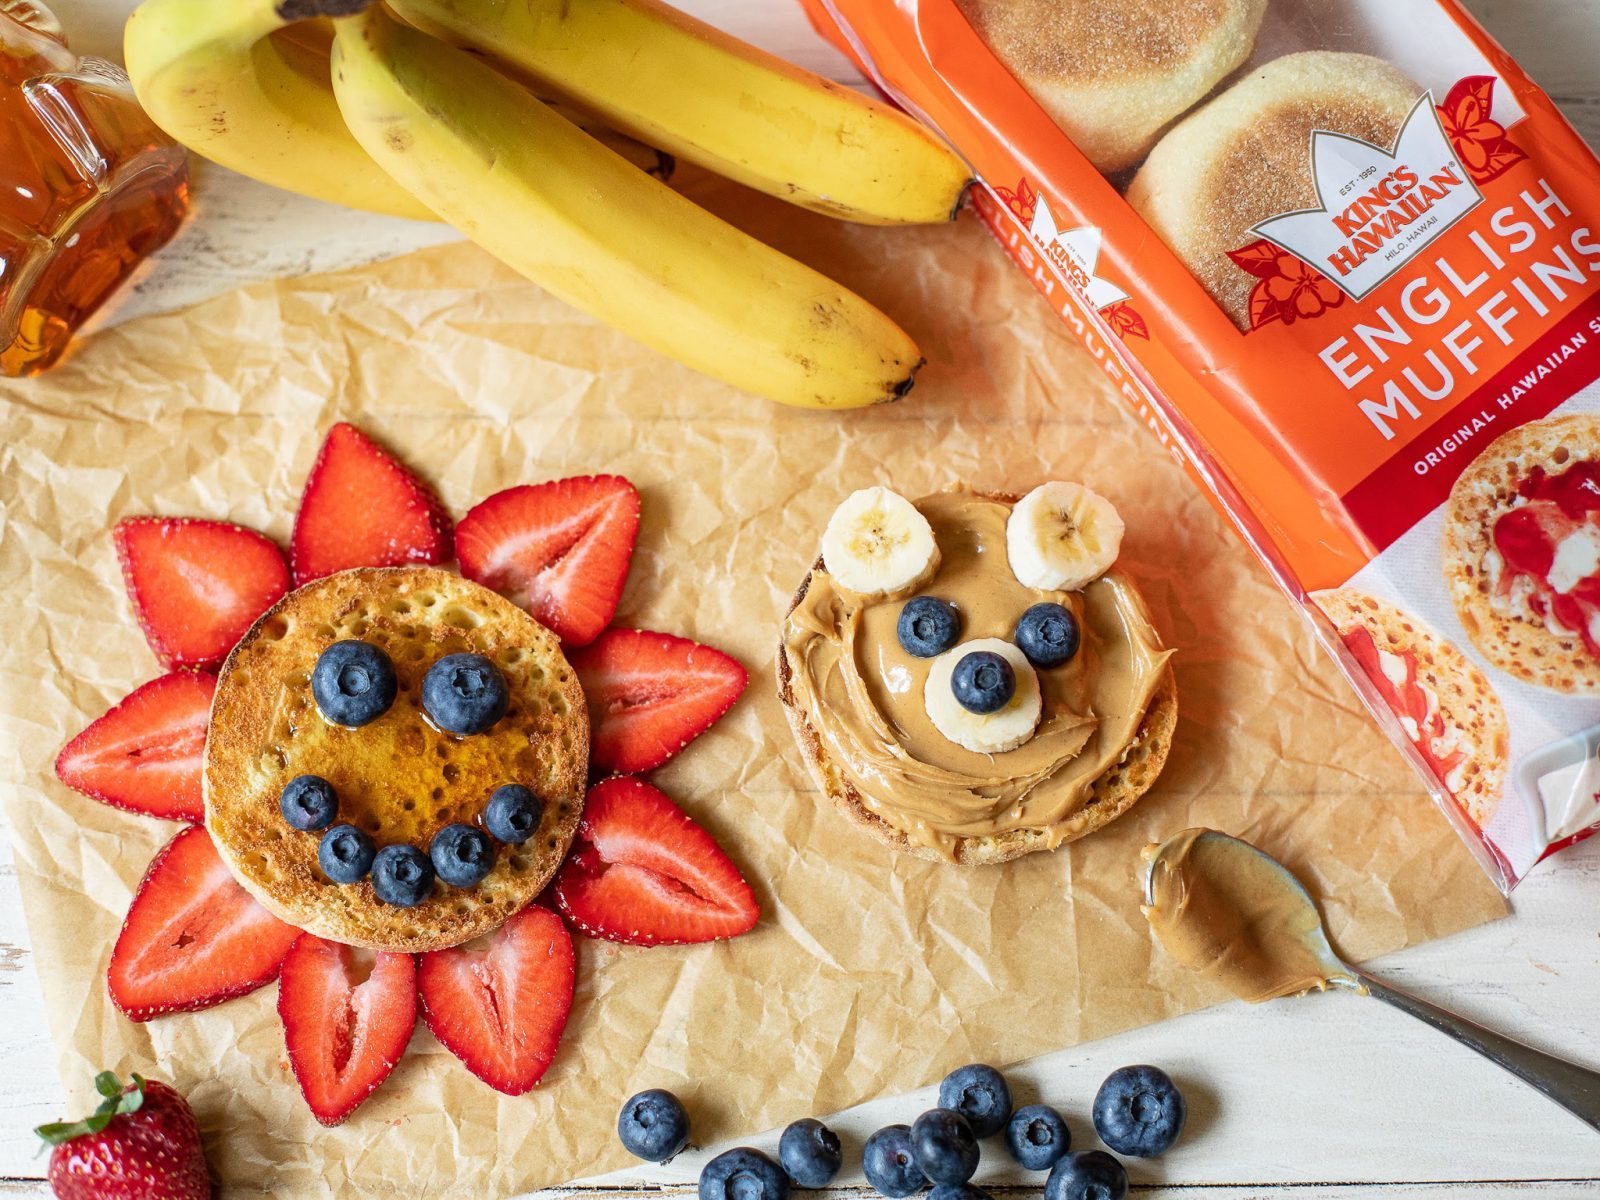 Send The Kids Back To School With The Great Taste Of King's Hawaiian English Muffins - Available Now At Select Locations on I Heart Publix